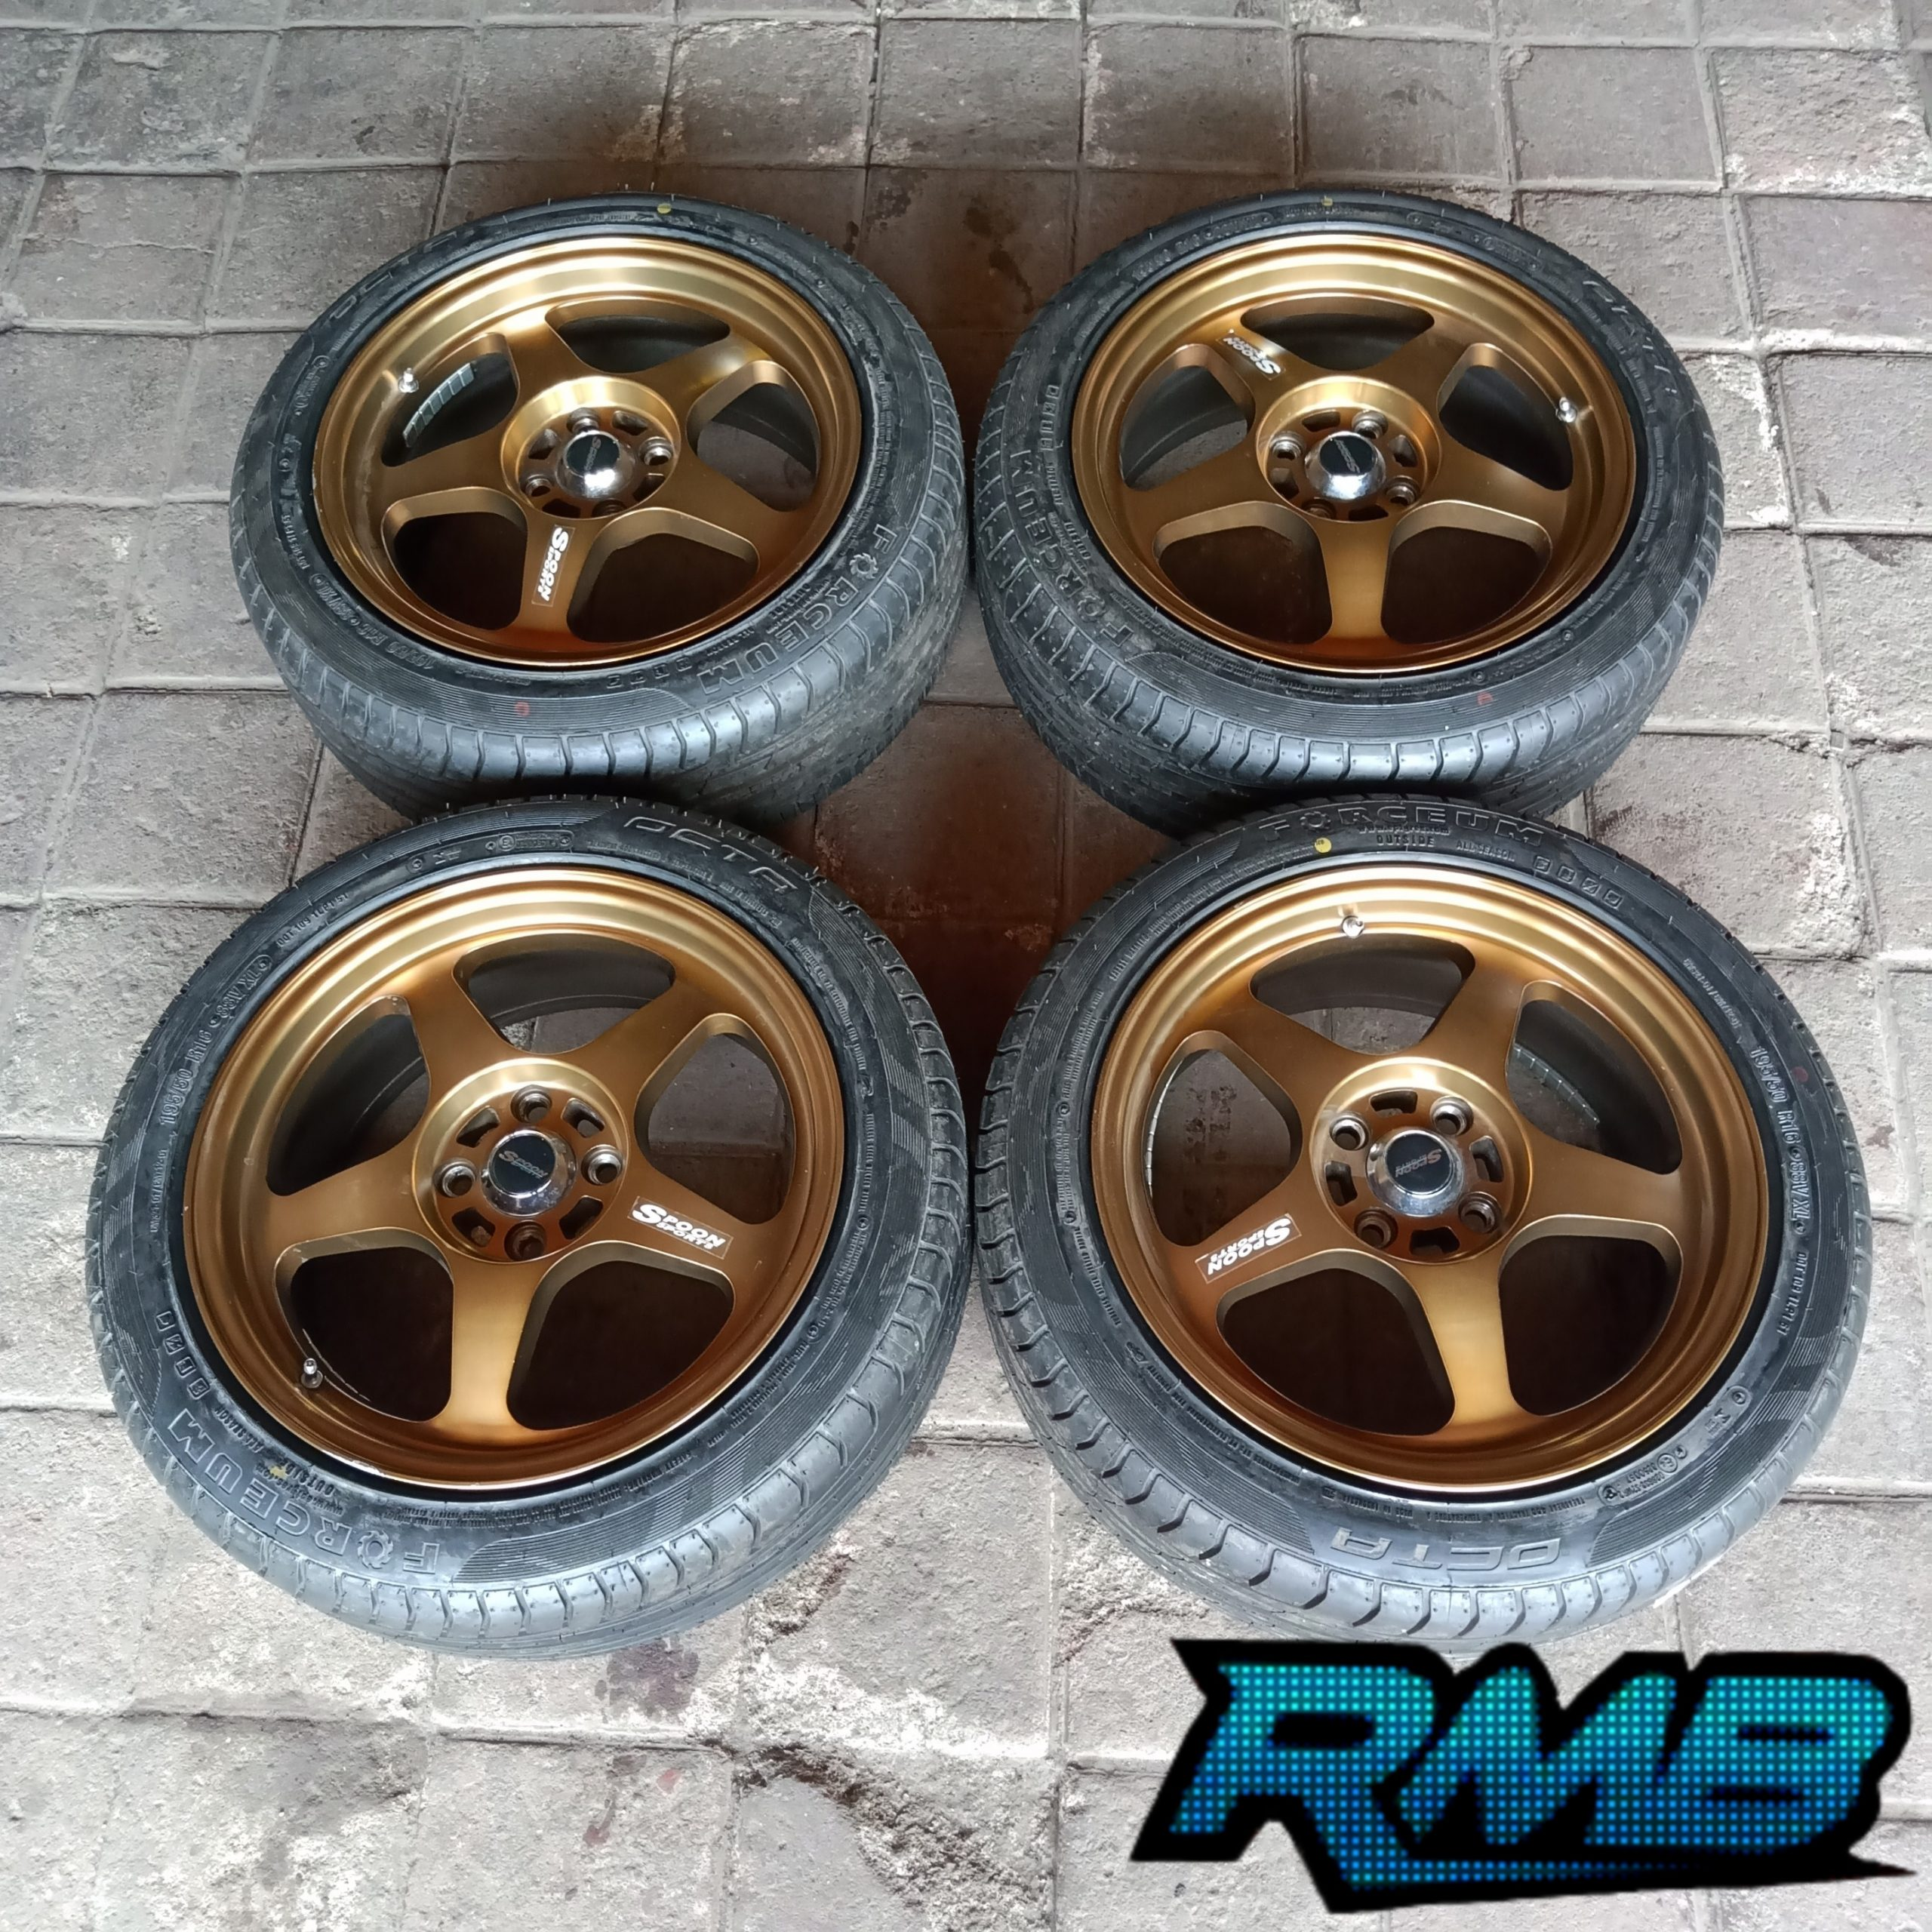 Velg Racing Spoon R16 Lubang 4×100 Plus Ban Forceum Octa (Second)